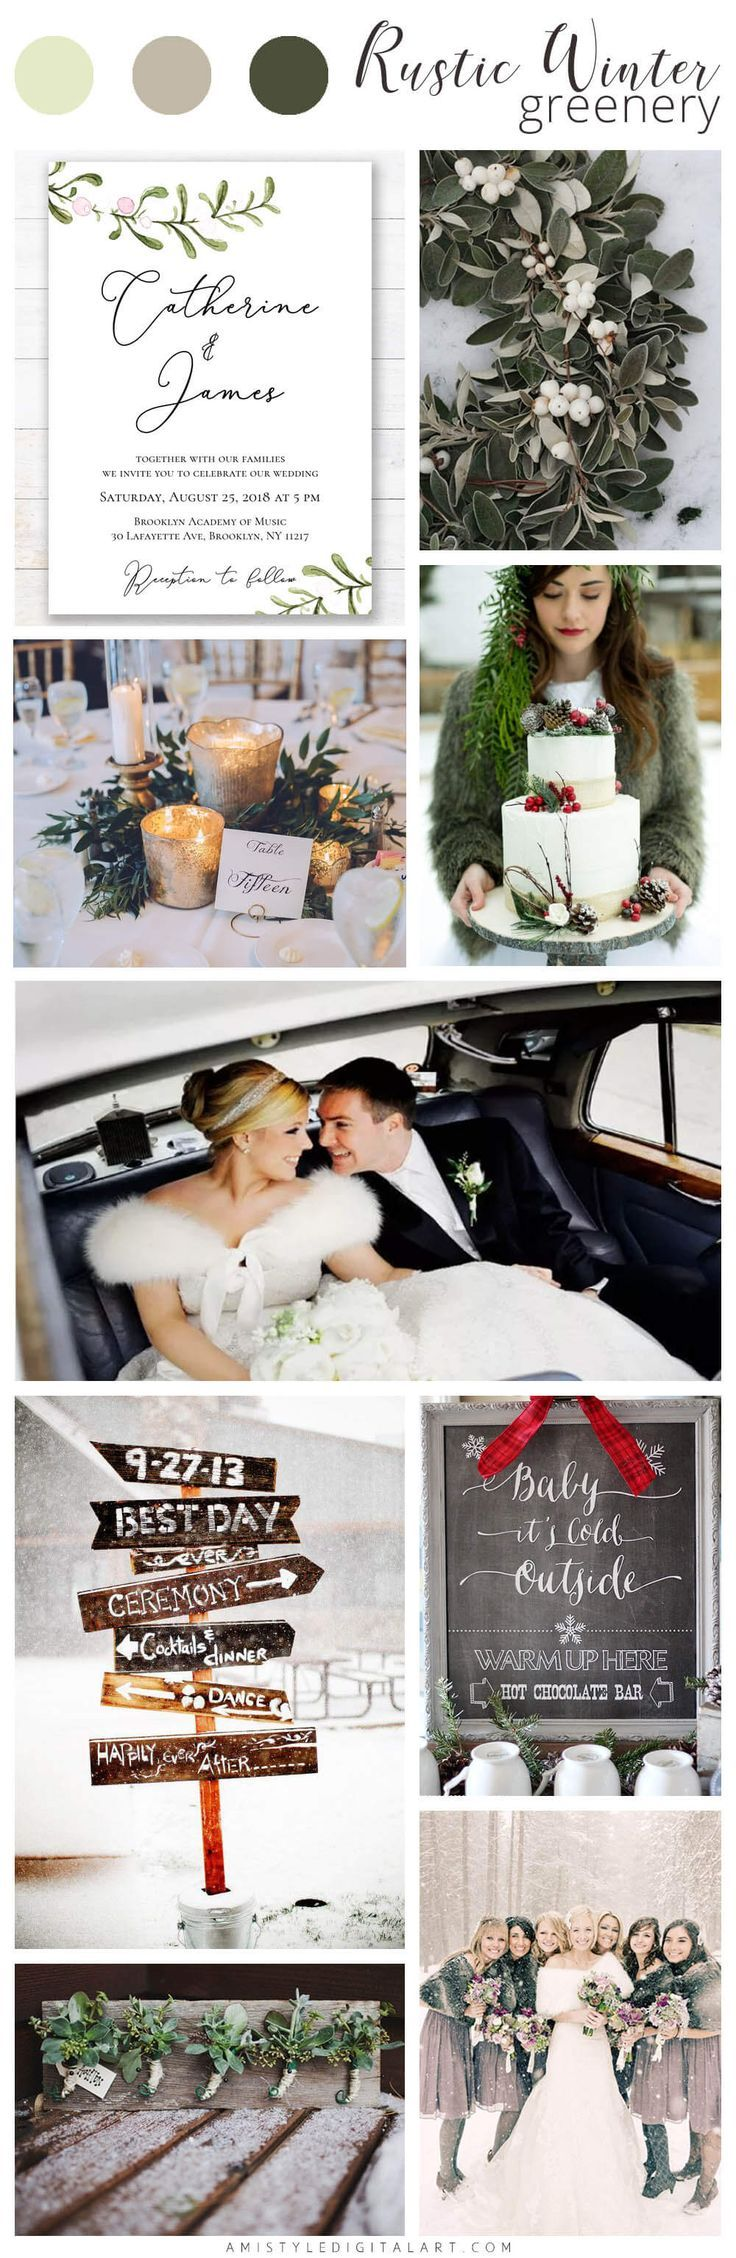 Rustic Winter Greenery Wedding Color Board by Amistyle Digital Art